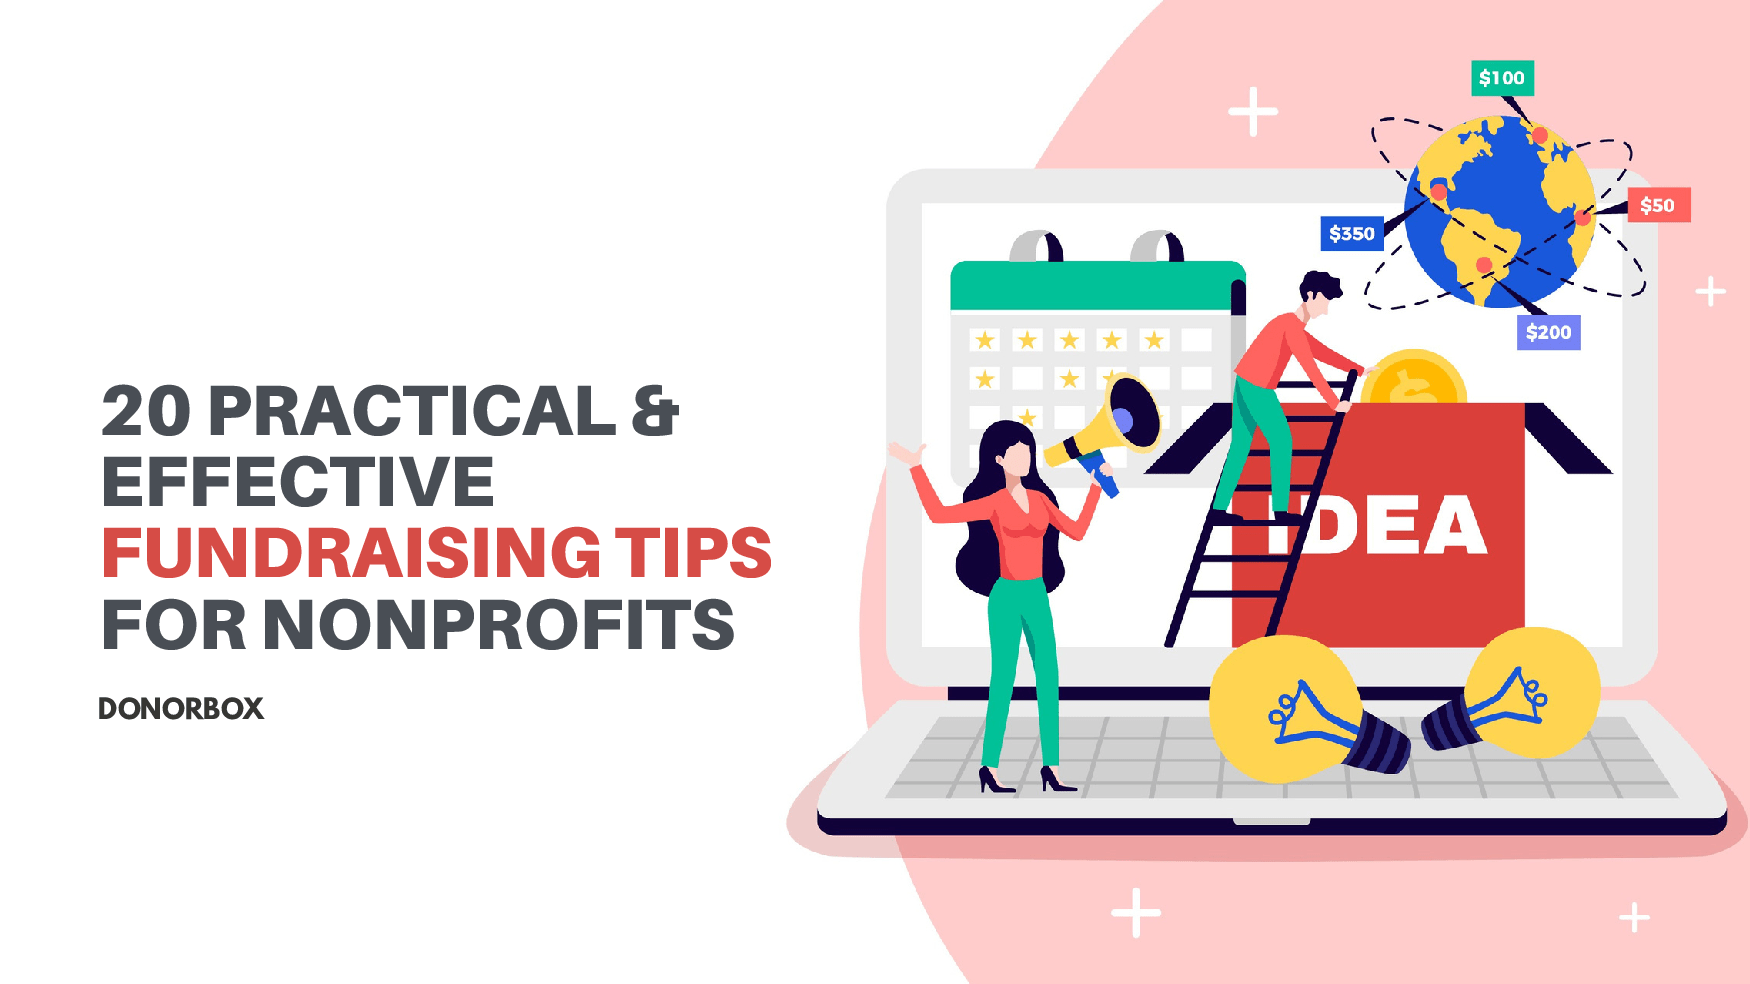 20 Practical & Effective Fundraising Tips for Nonprofits